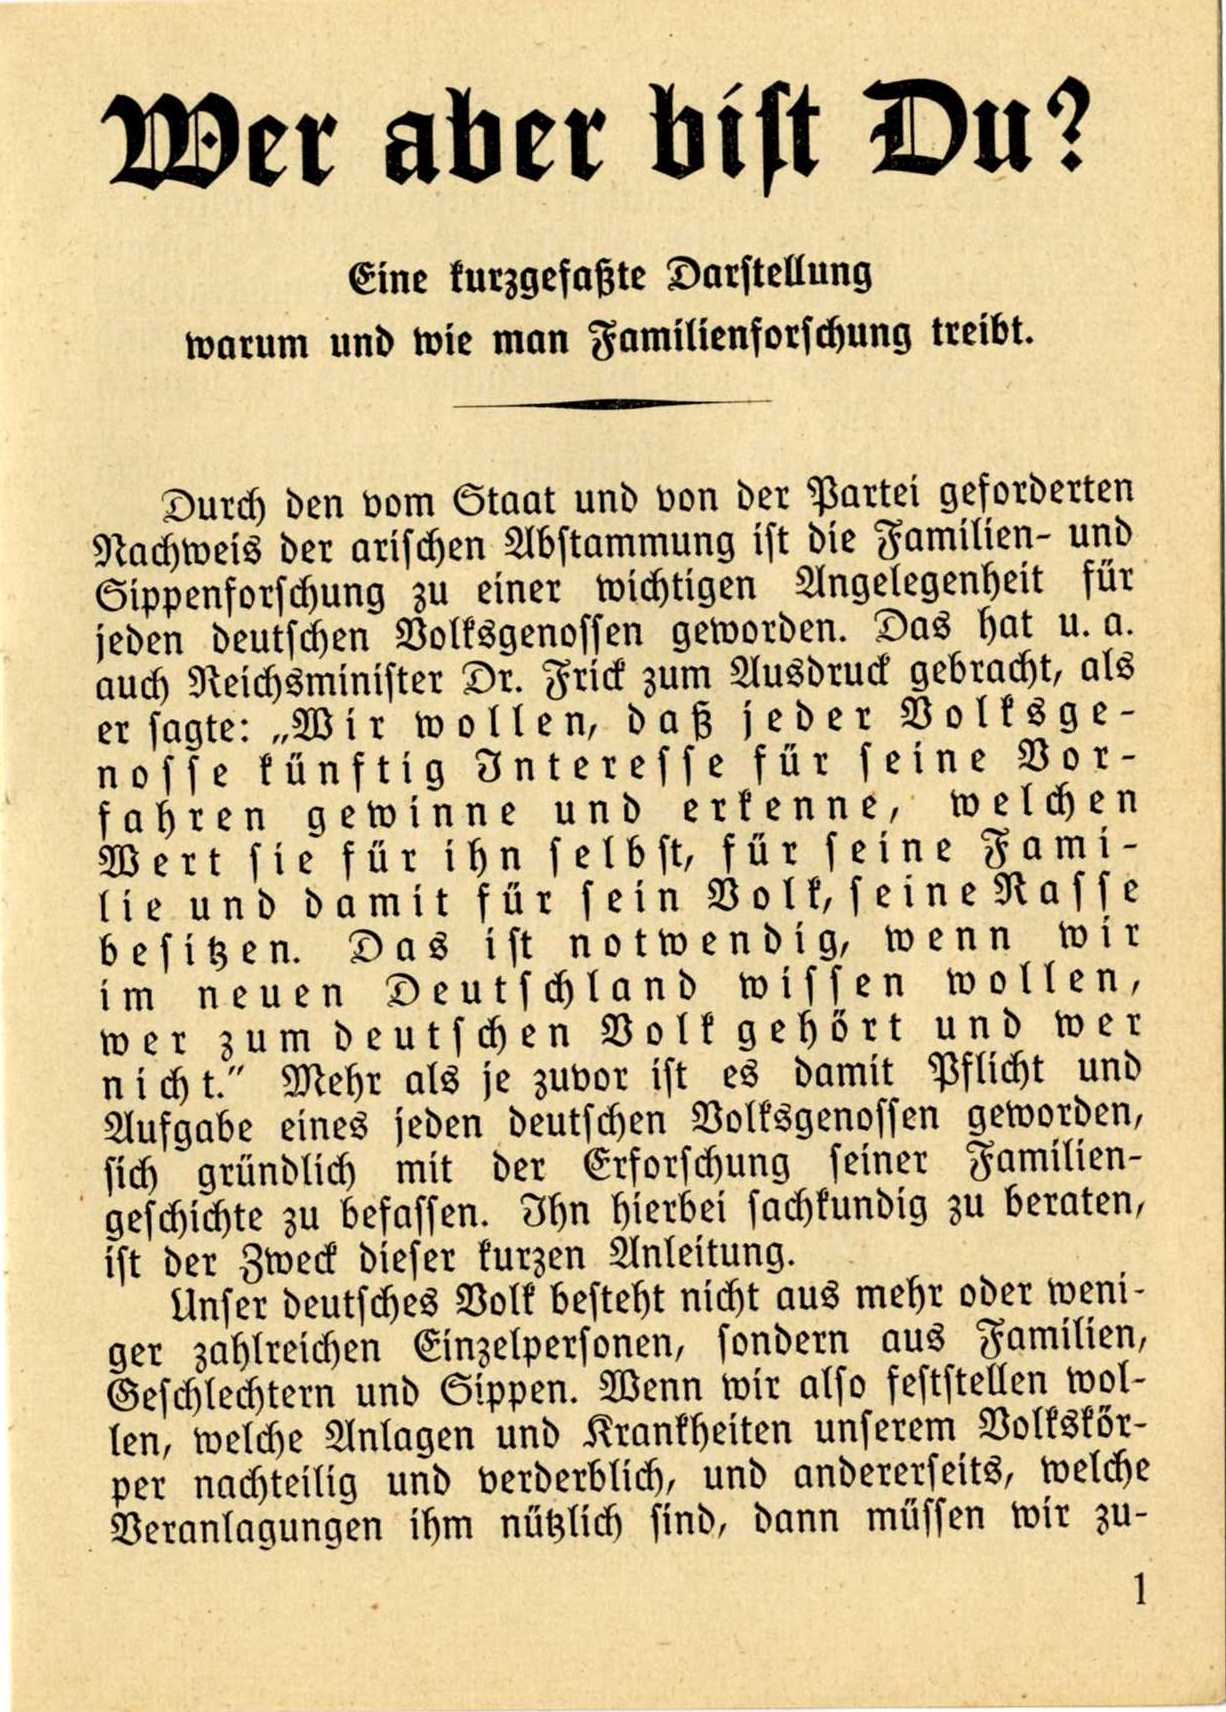 This German ancestry book encouraged Germans to document the so-called purity of their genetic heritage.